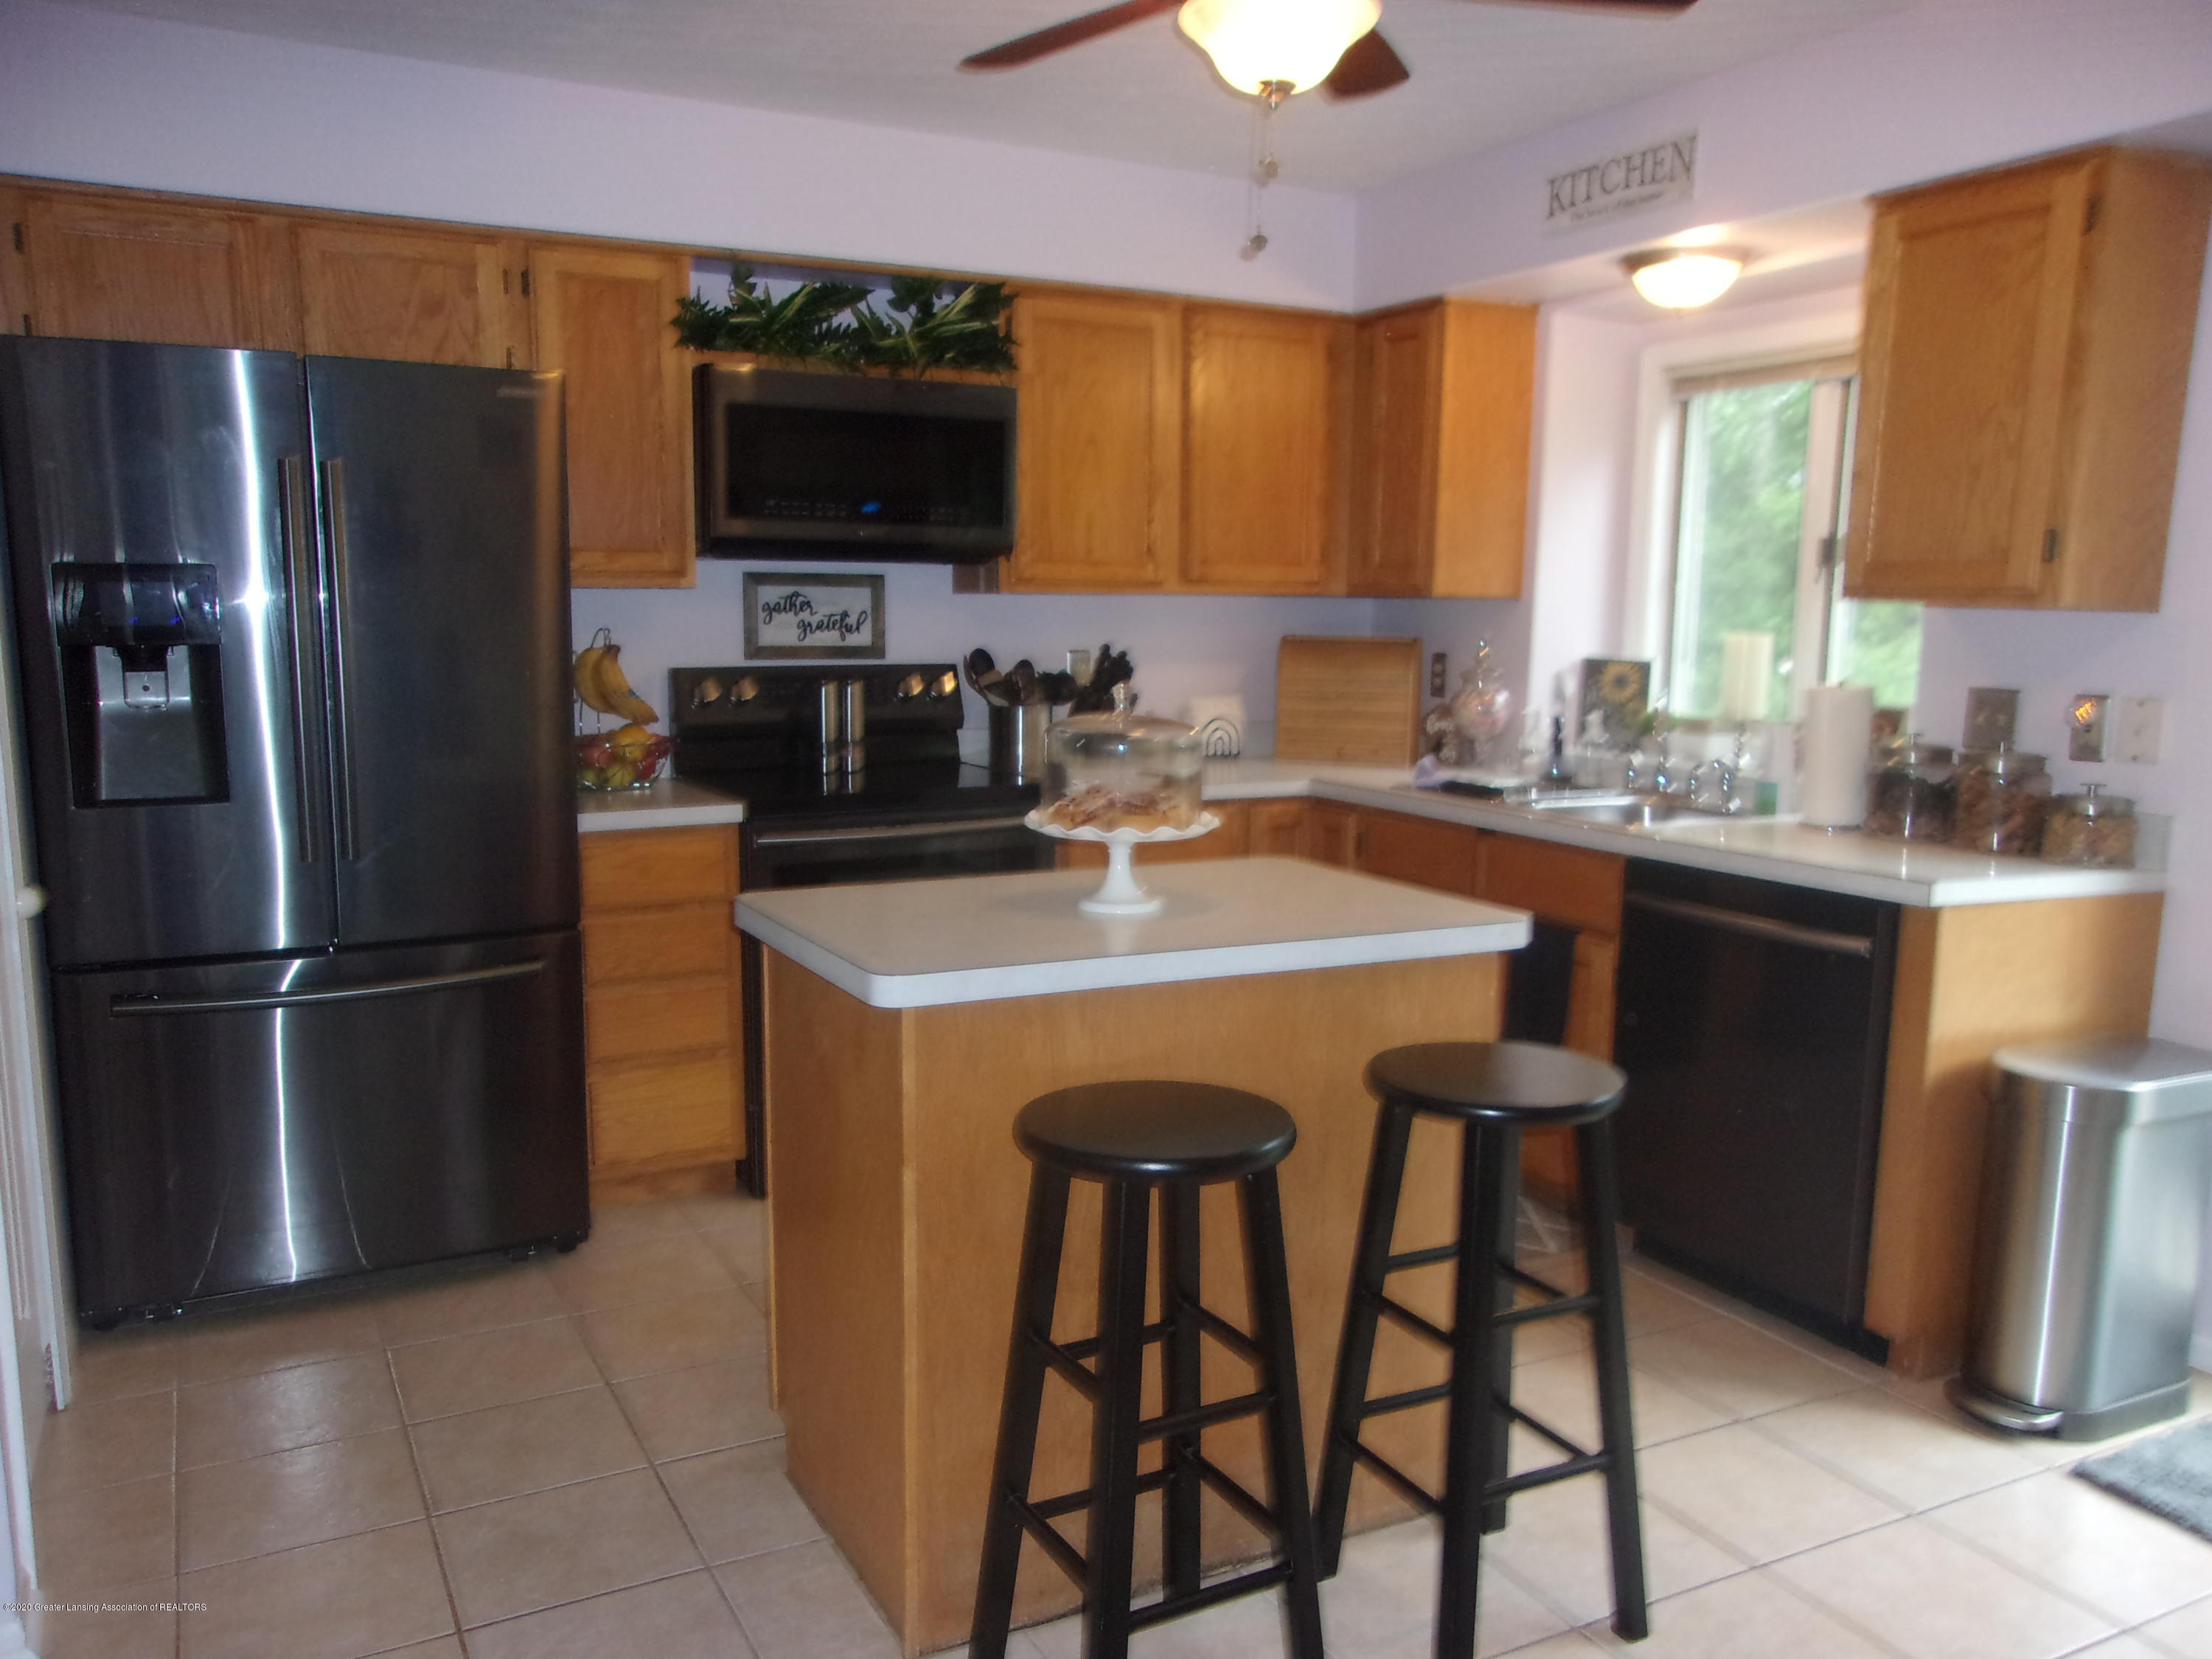 3991 Windy Heights Dr - 100_0987 - 20